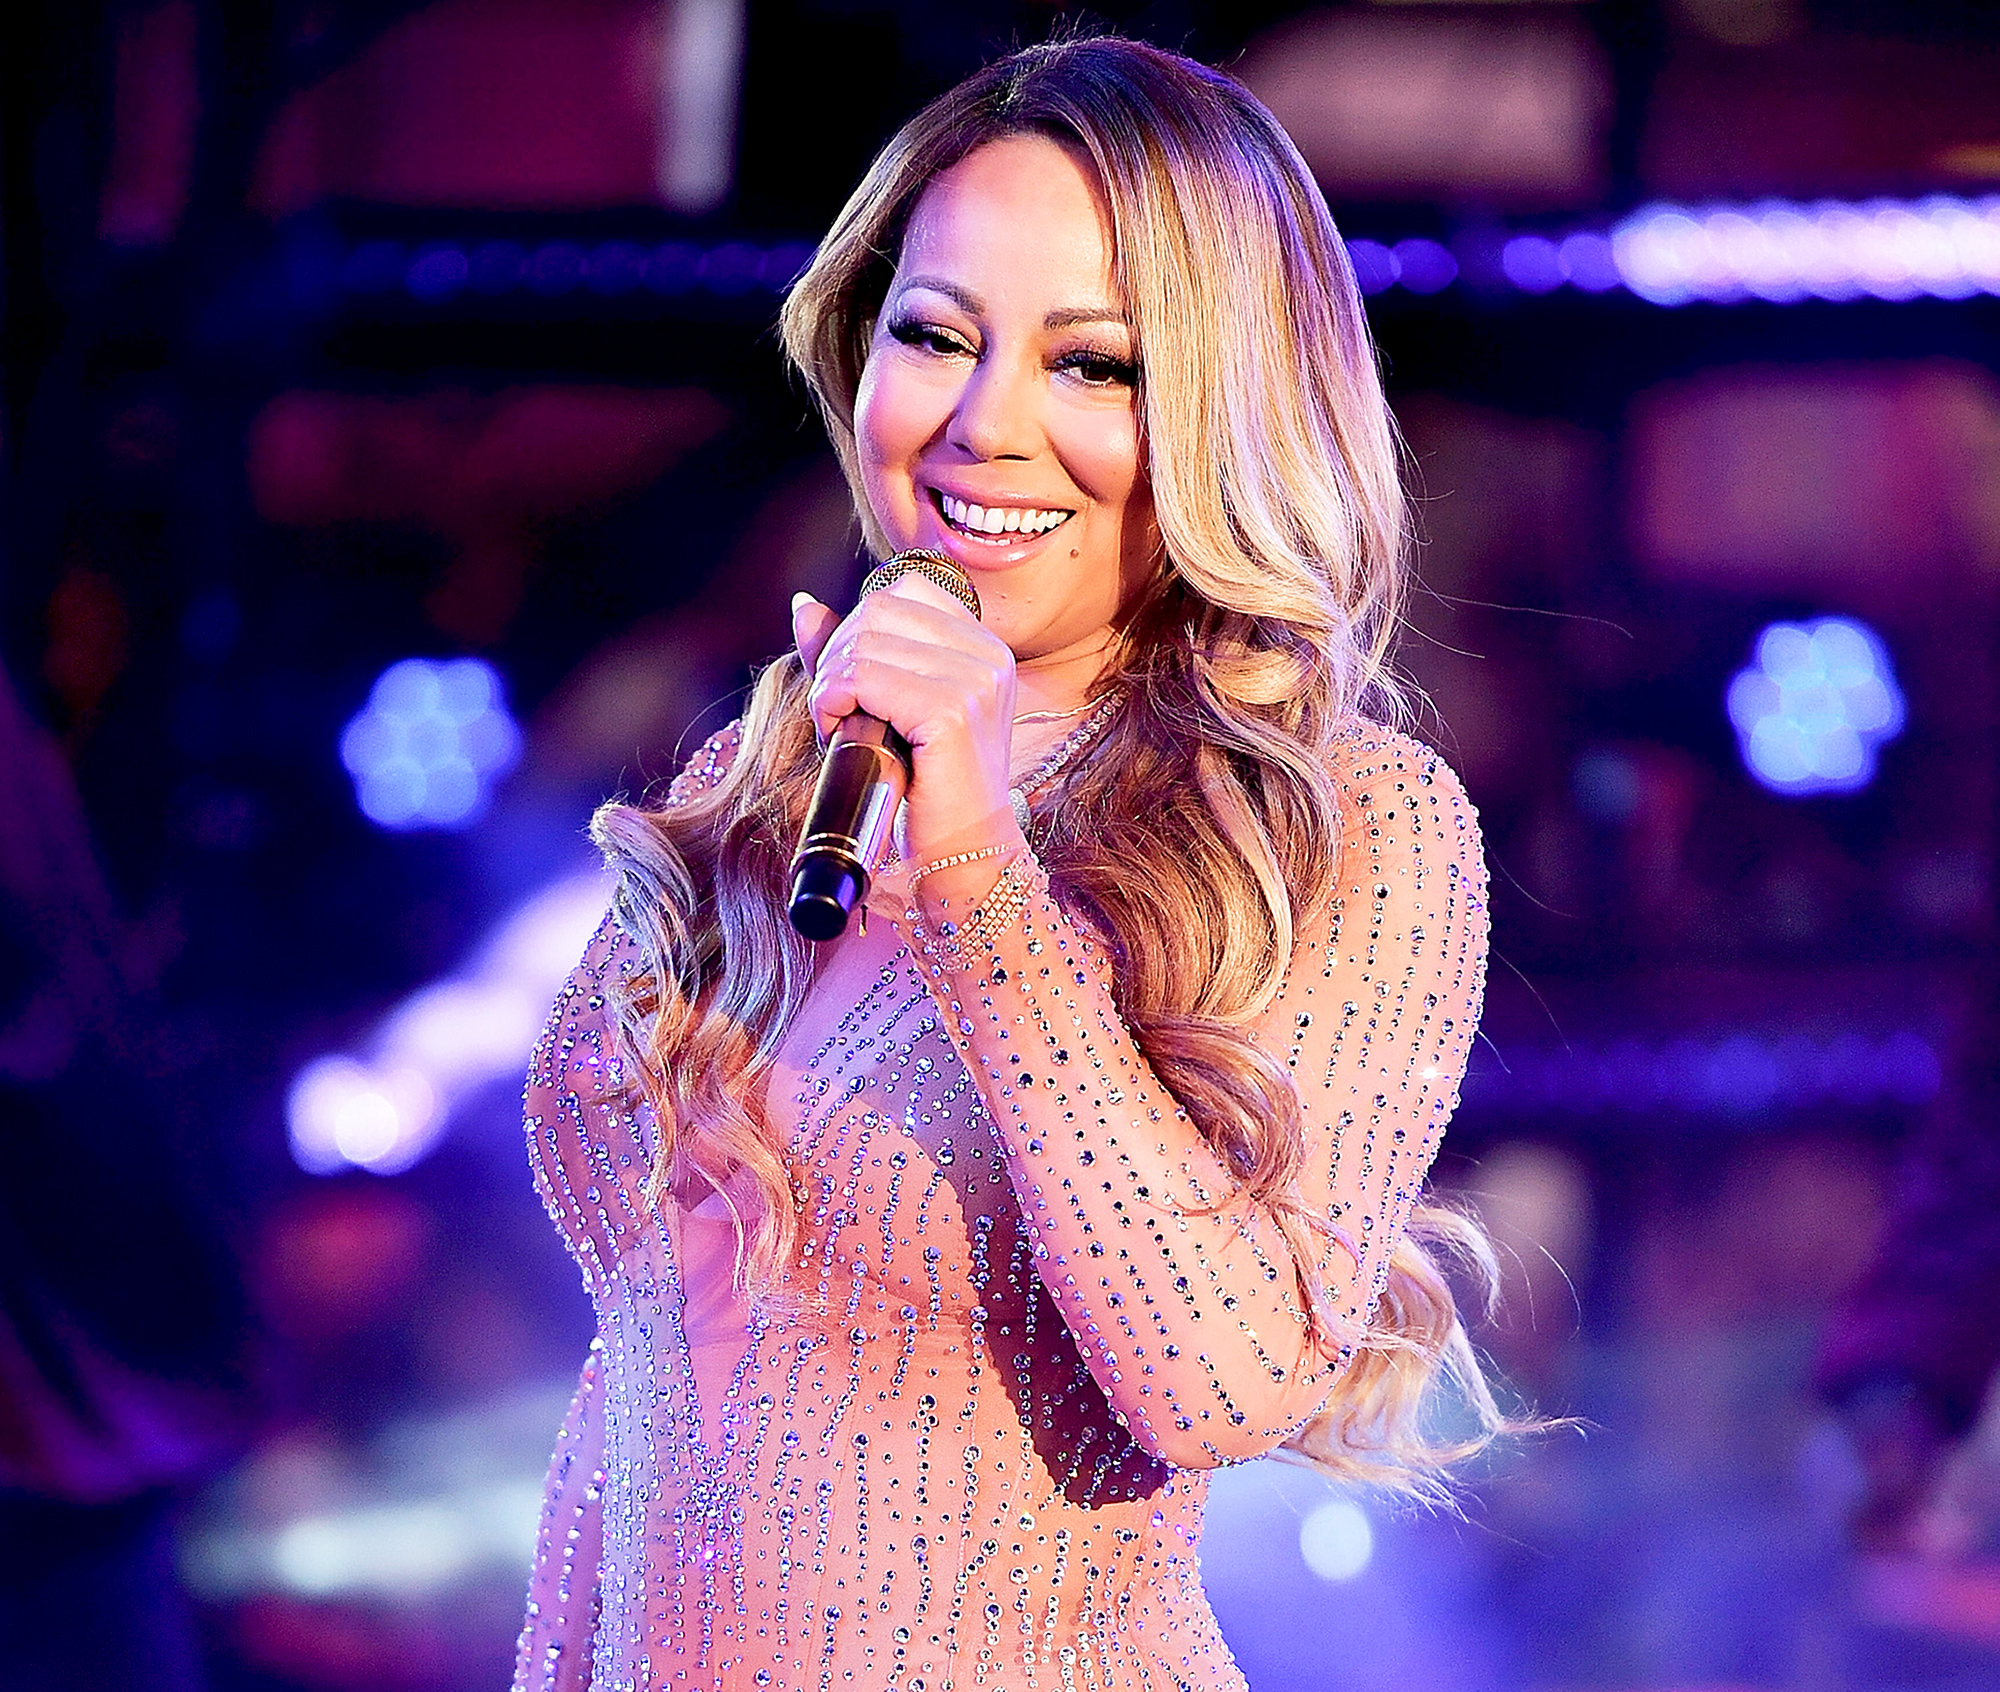 Mariah Carey Set to Return to 'Dick Clark's Rockin' New Year's Eve'